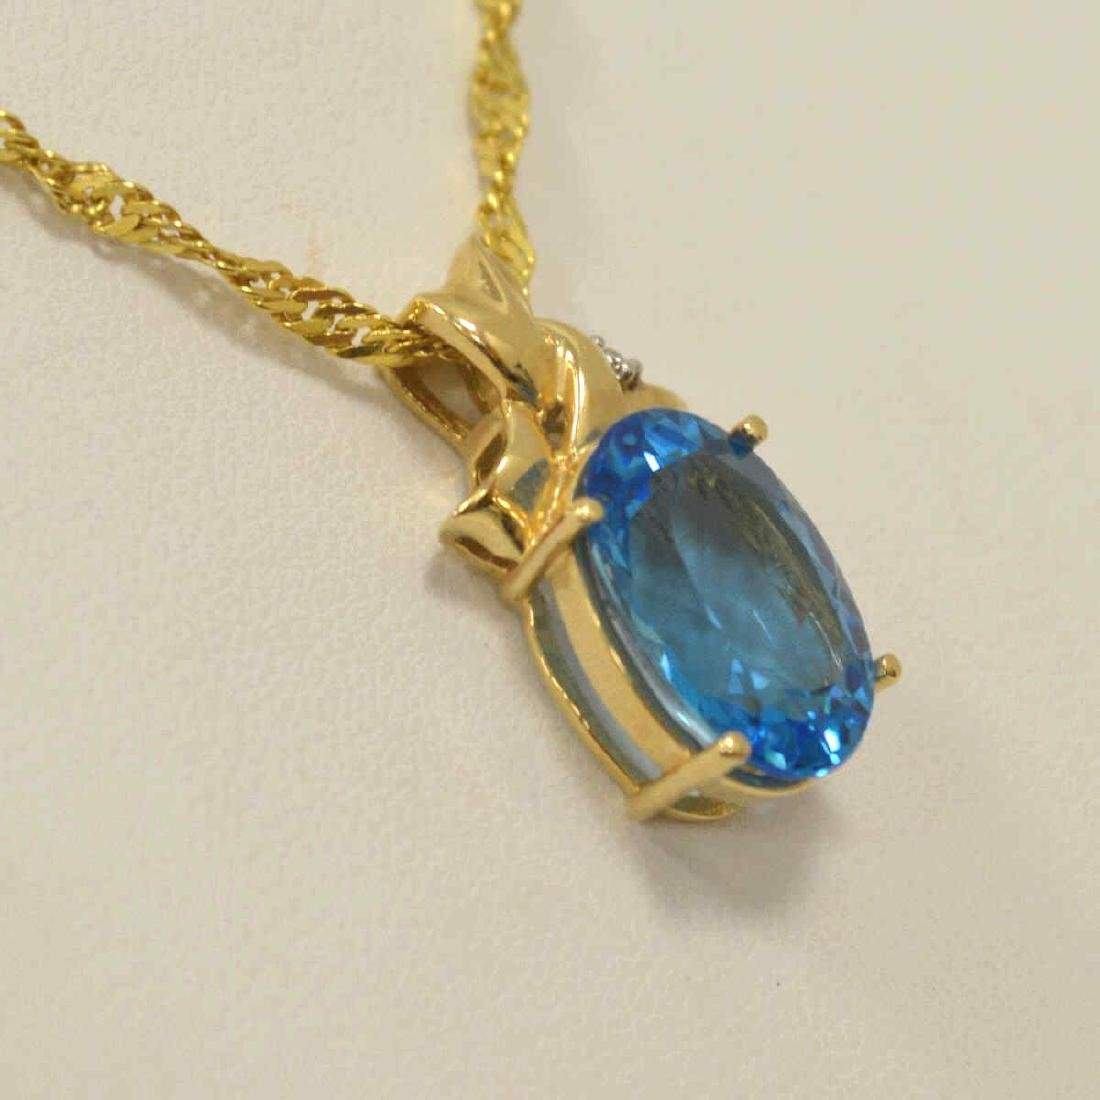 14kt yellow gold blue topaz necklace - 3